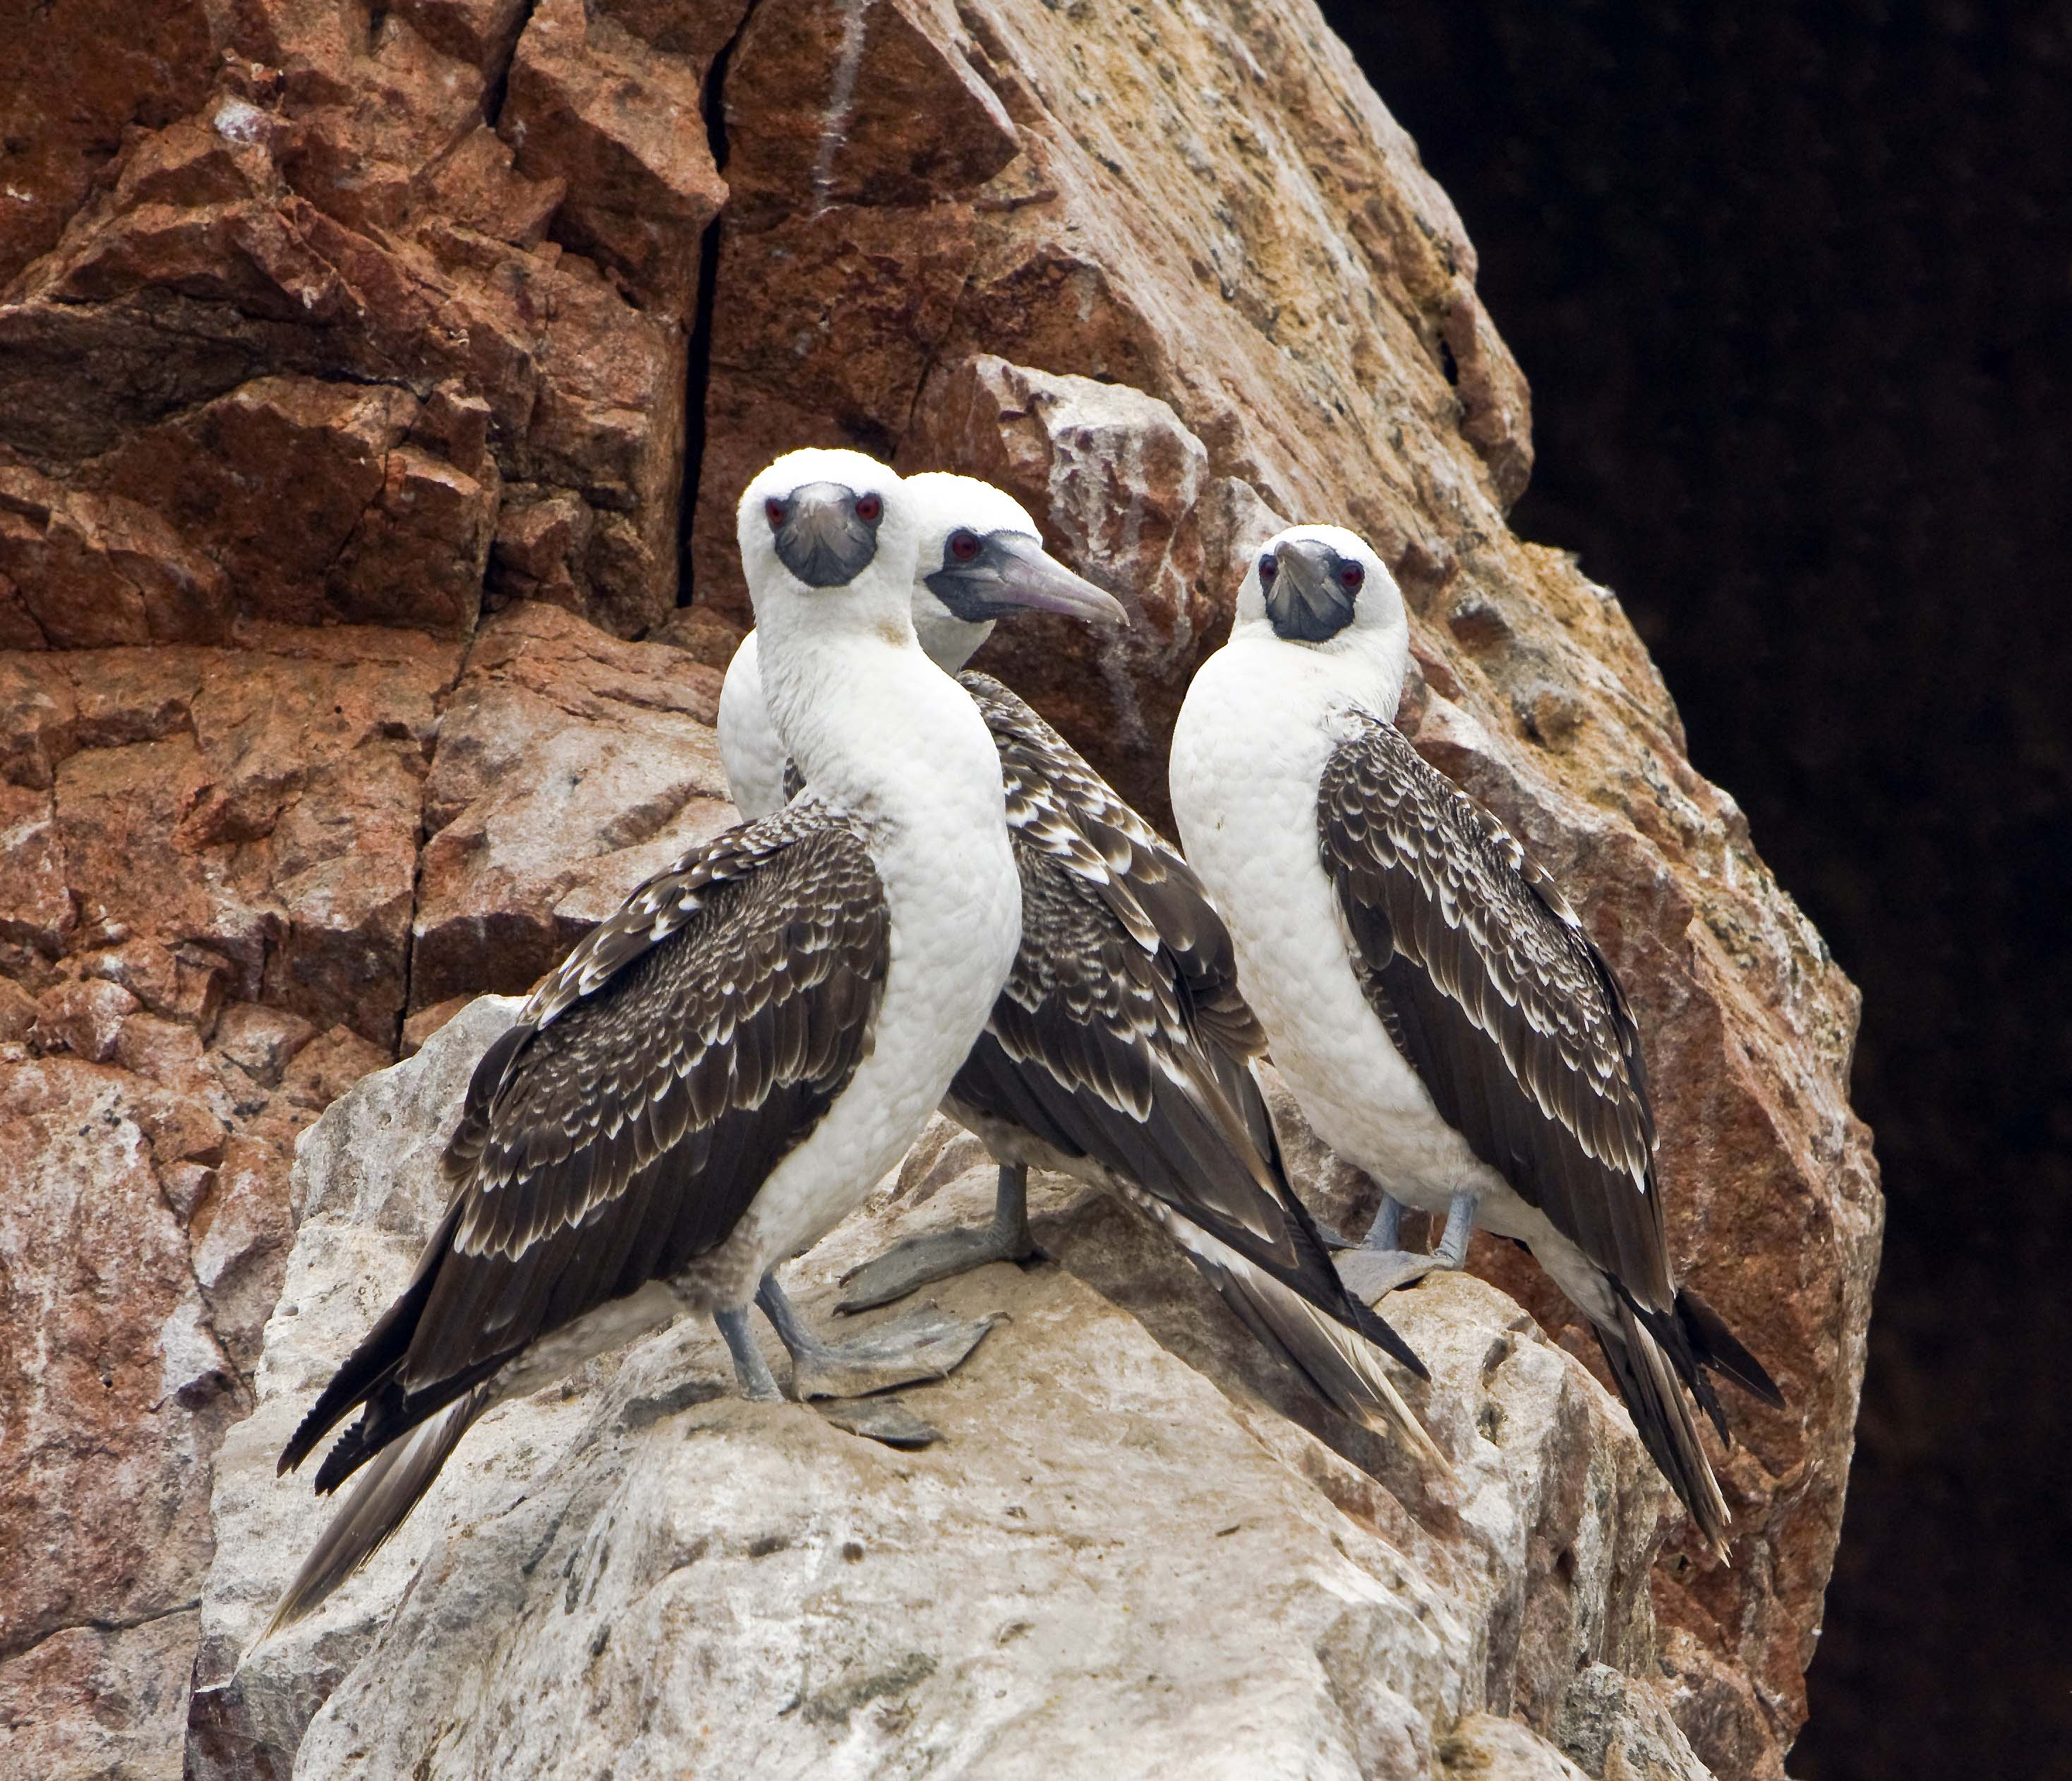 Scientific Name: Peruvian Booby - Photo: Peter de Haas